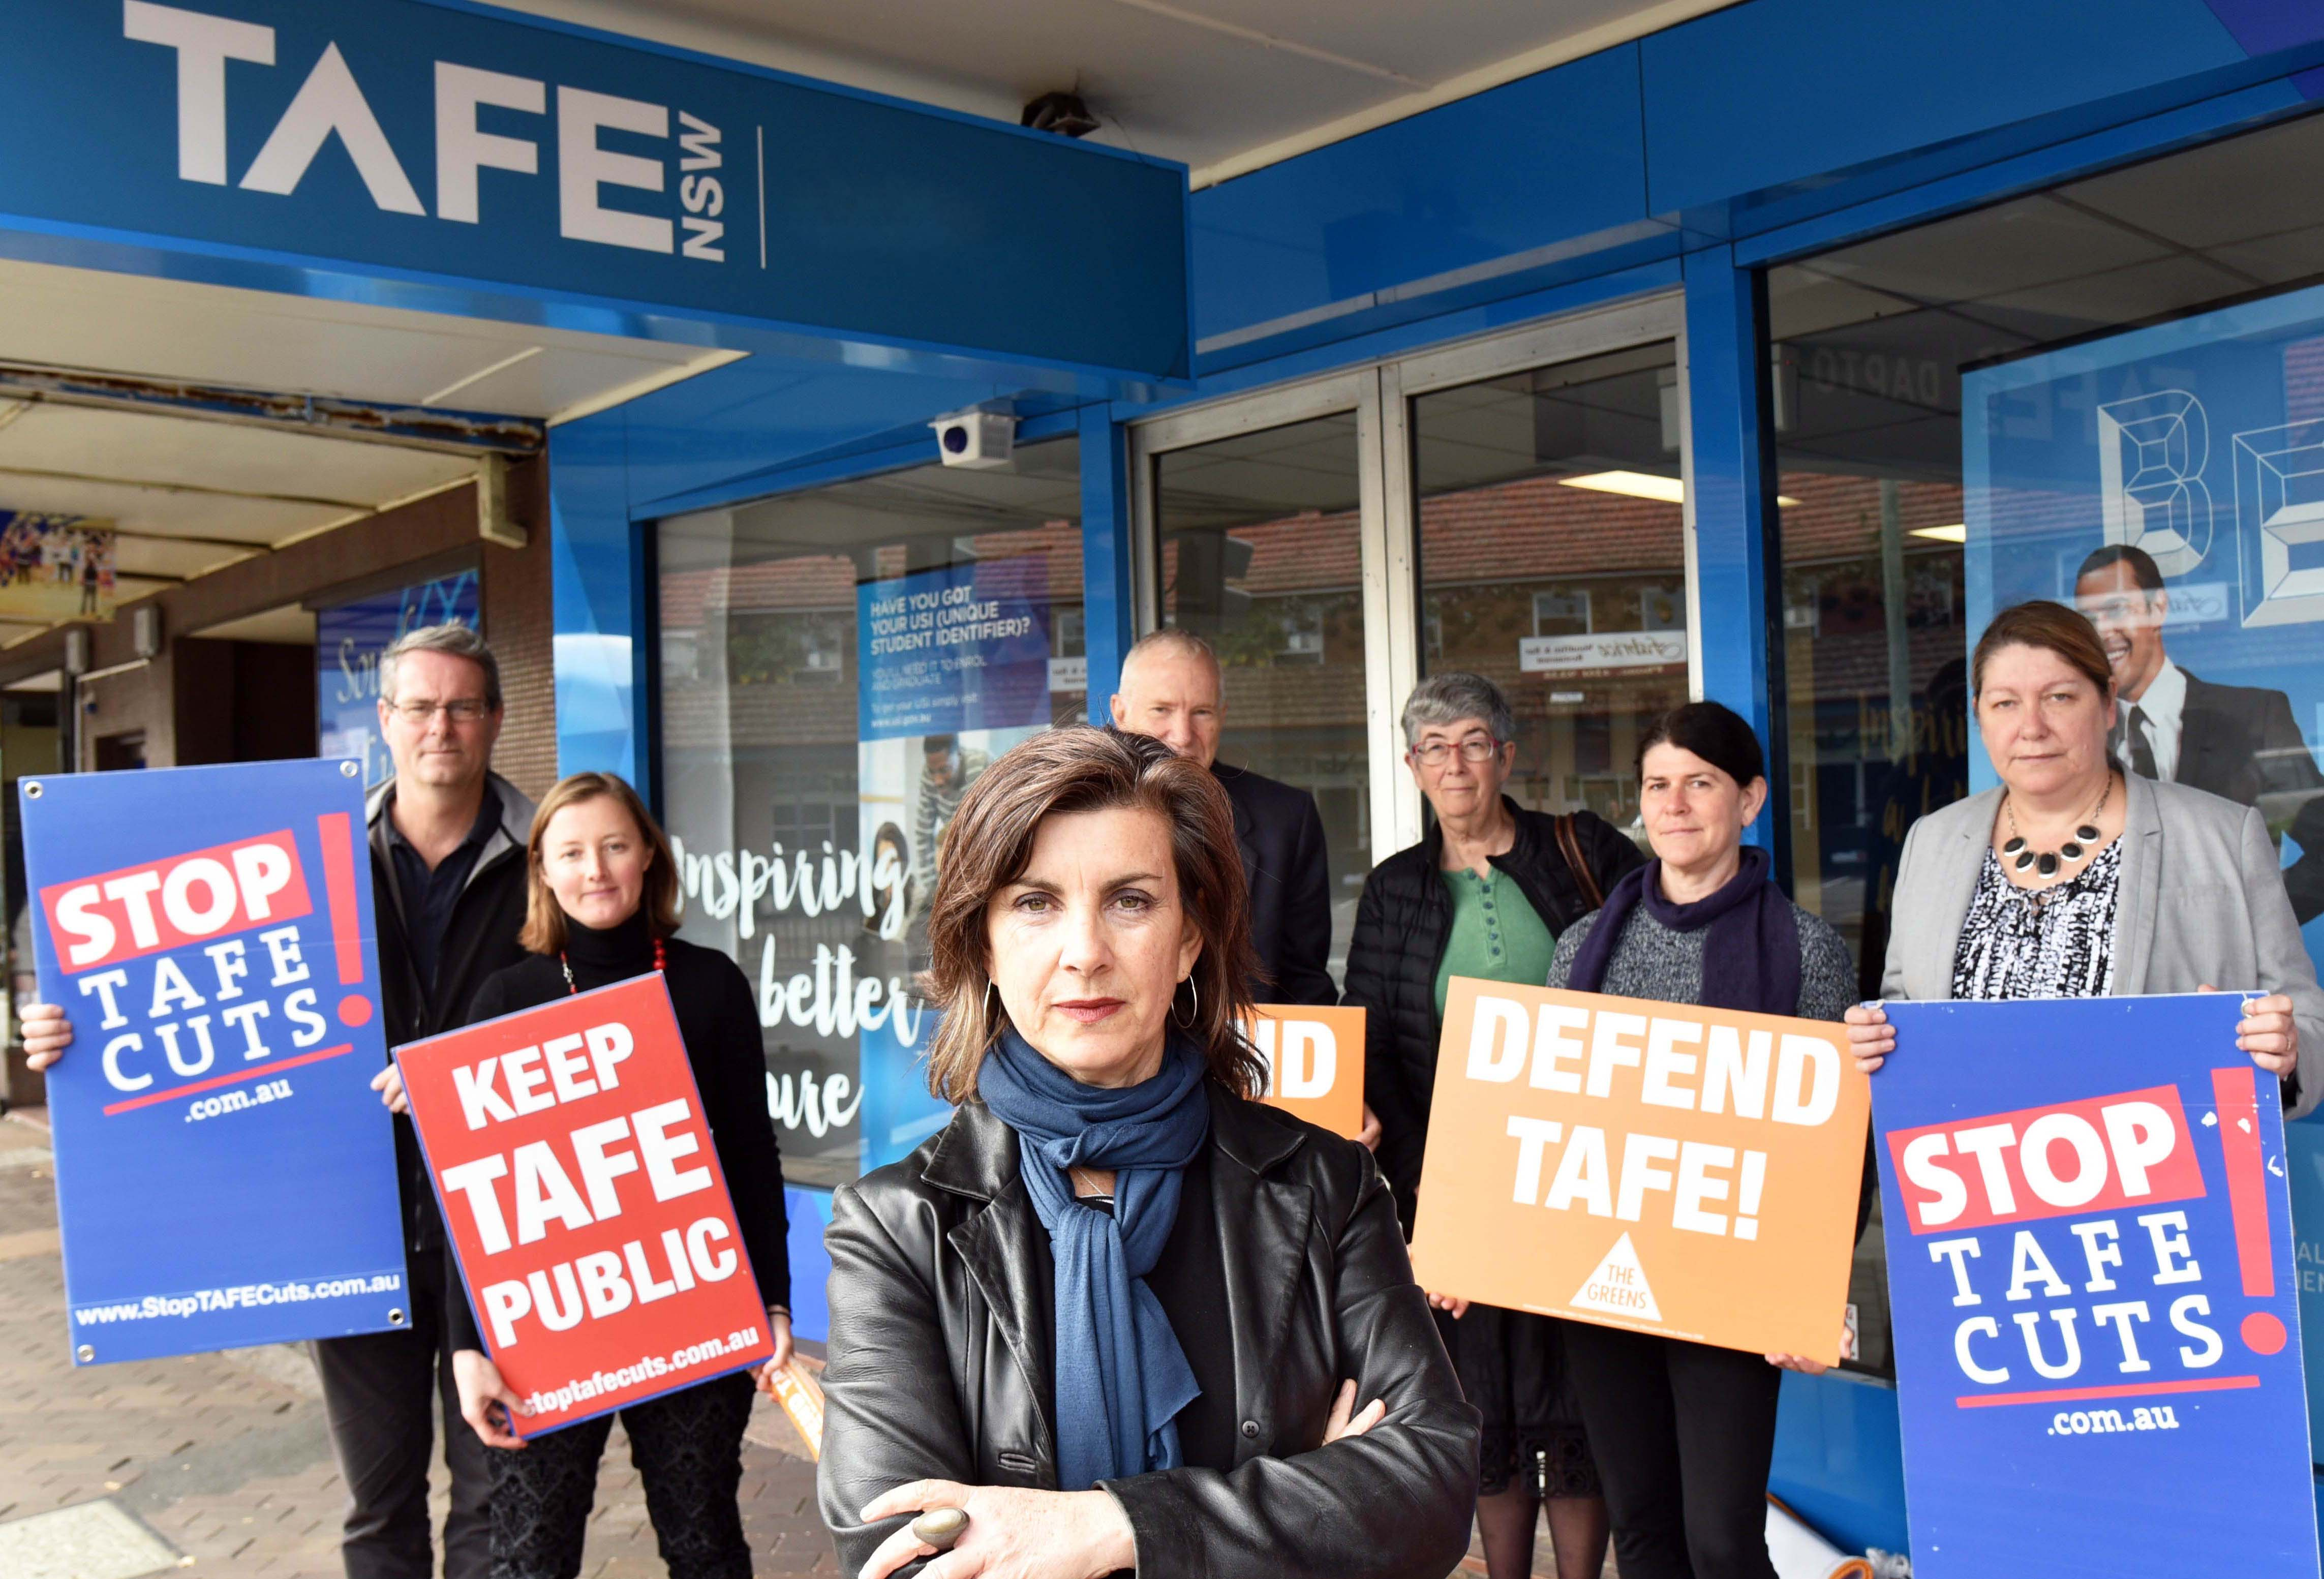 Defend_TAFE.jpg